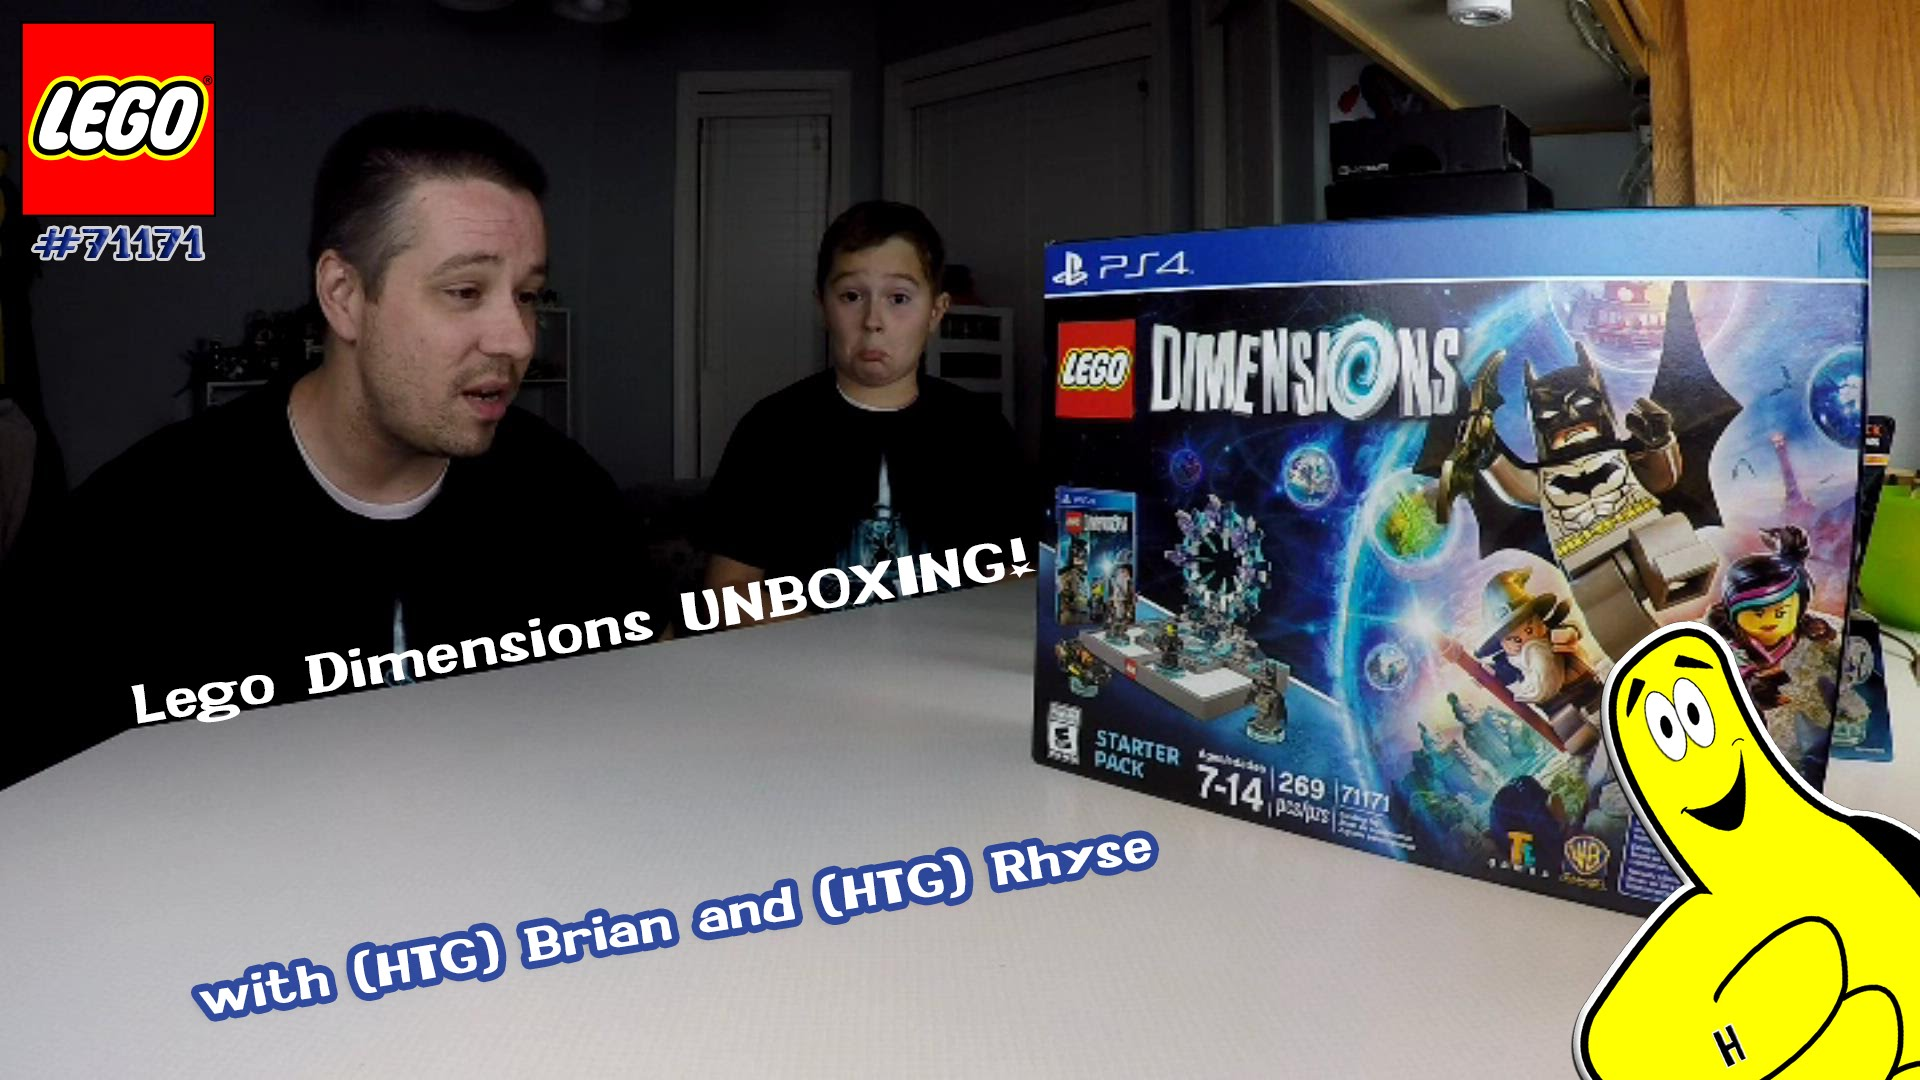 Lego Dimensions: Unboxing Dimensions and ALL Wave 1 Sets w/ Brian and Rhyse – HTG